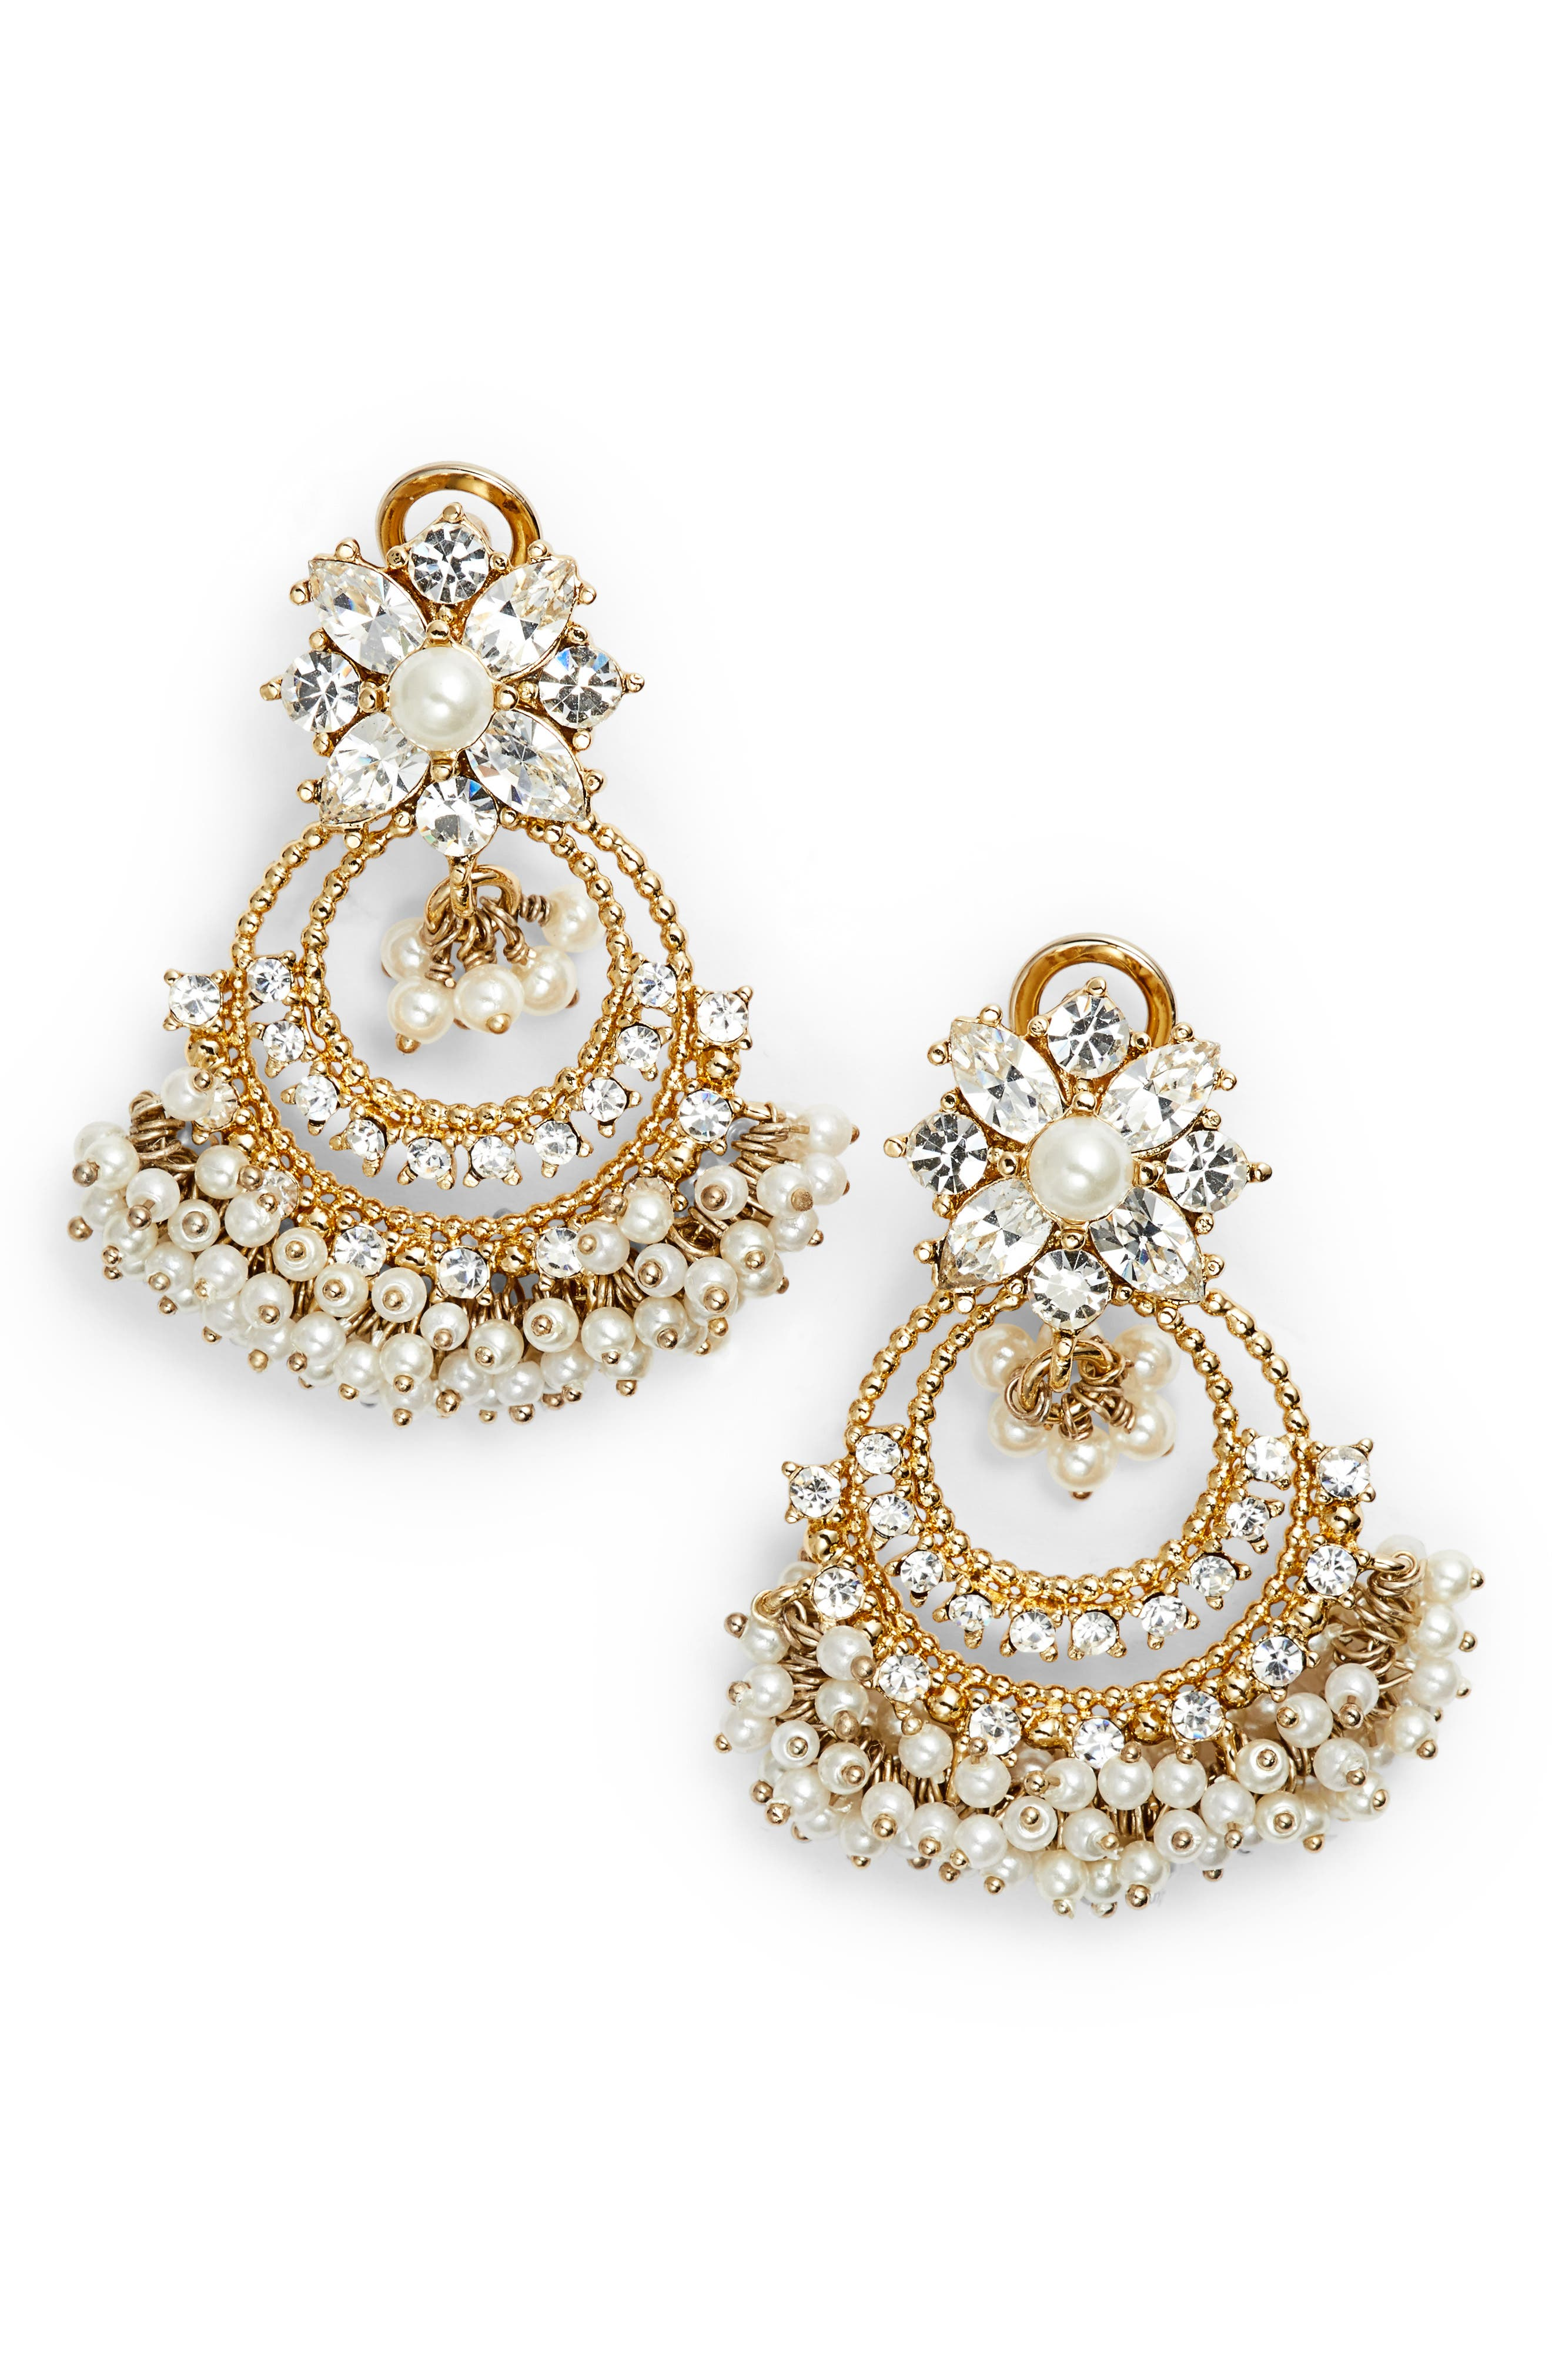 Crystal Chandelier Drop Earrings,                         Main,                         color, Gold/ White/ Cry